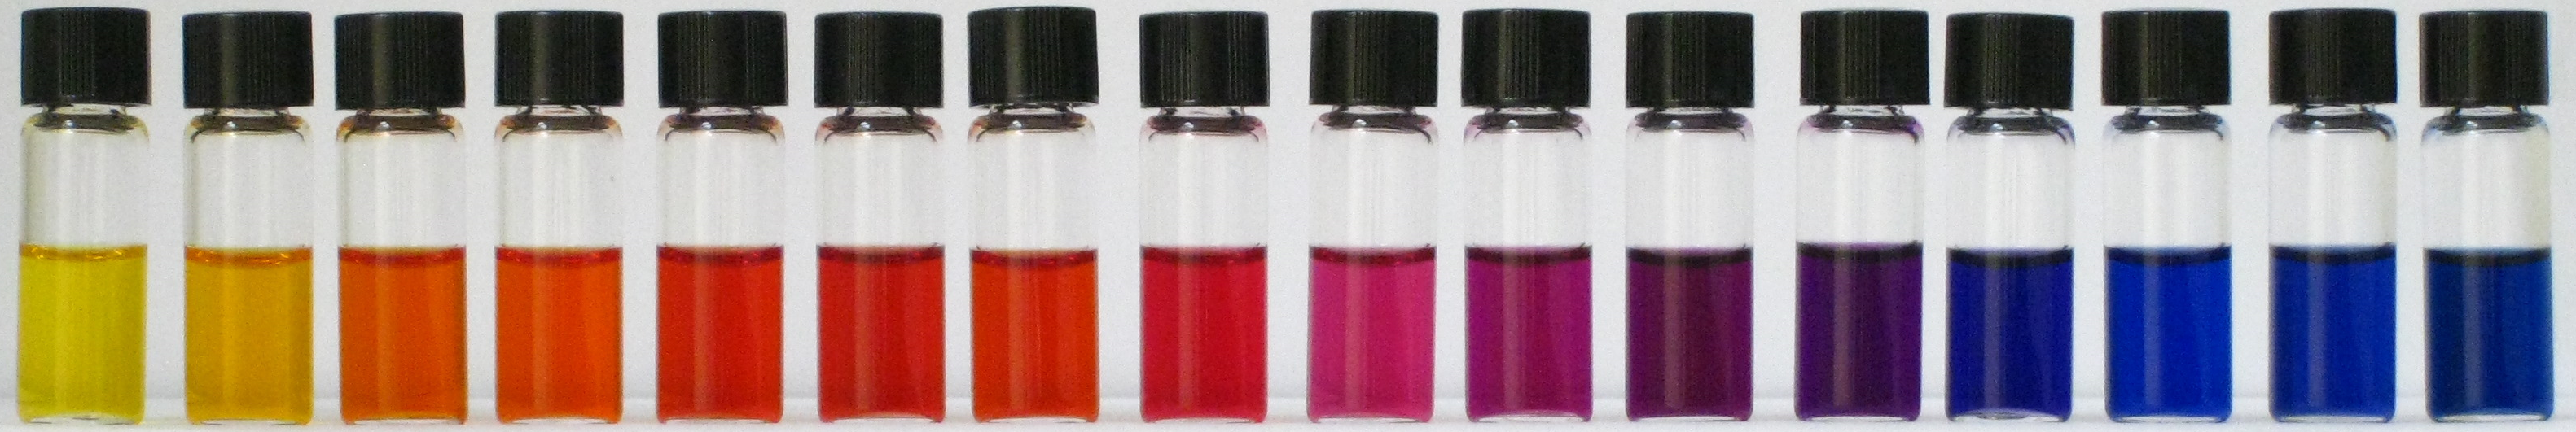 Palette of fluorinated voltage sensitive dyes from Potentiometric Probes